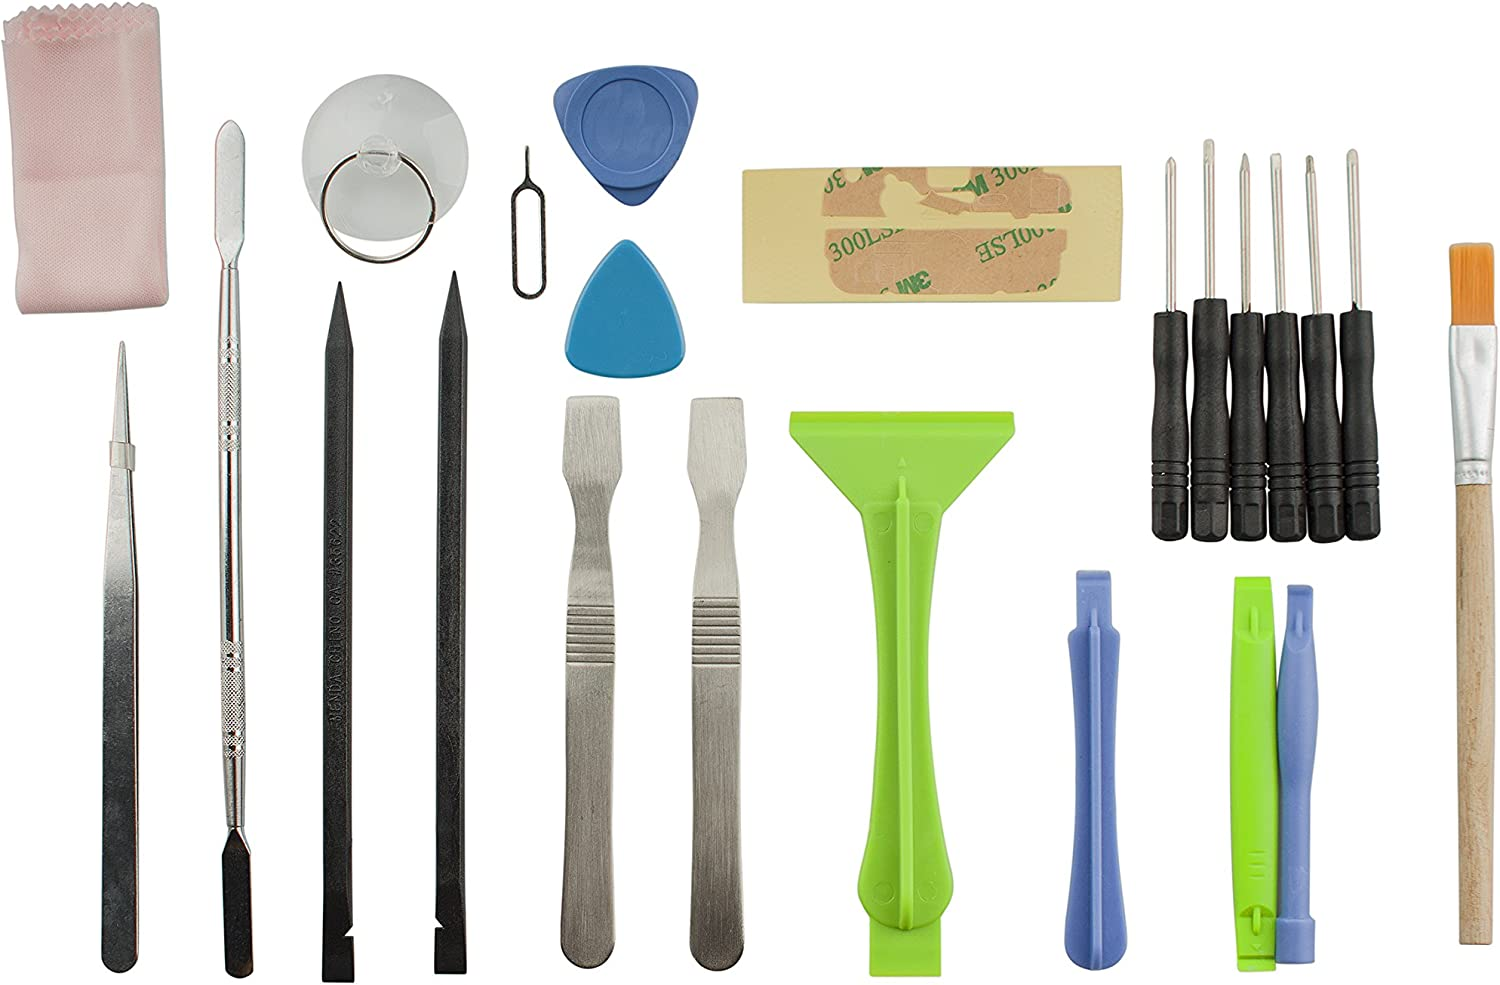 23 in 1 Laptop Repair Multi Opening Tools Kit Precision Screwdriver Set for Cell Mobile Phone Tablet PC